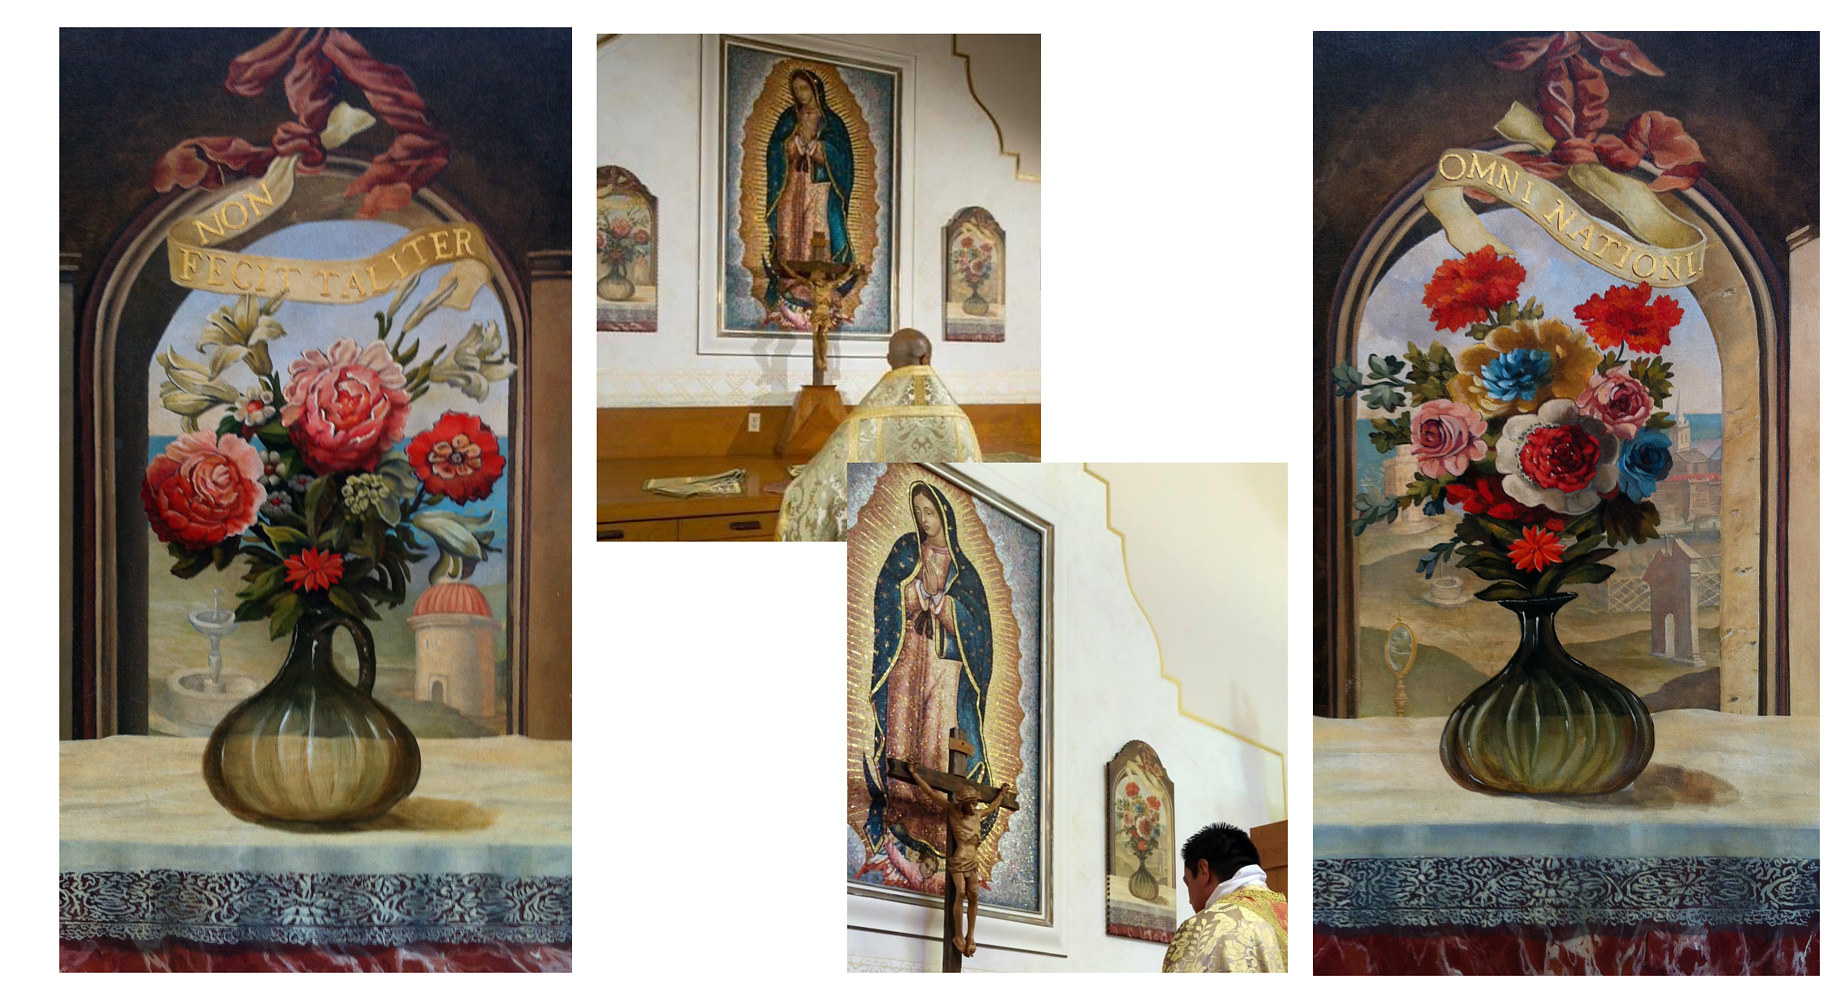 Monastary Sacristy paintings by Robert Milling